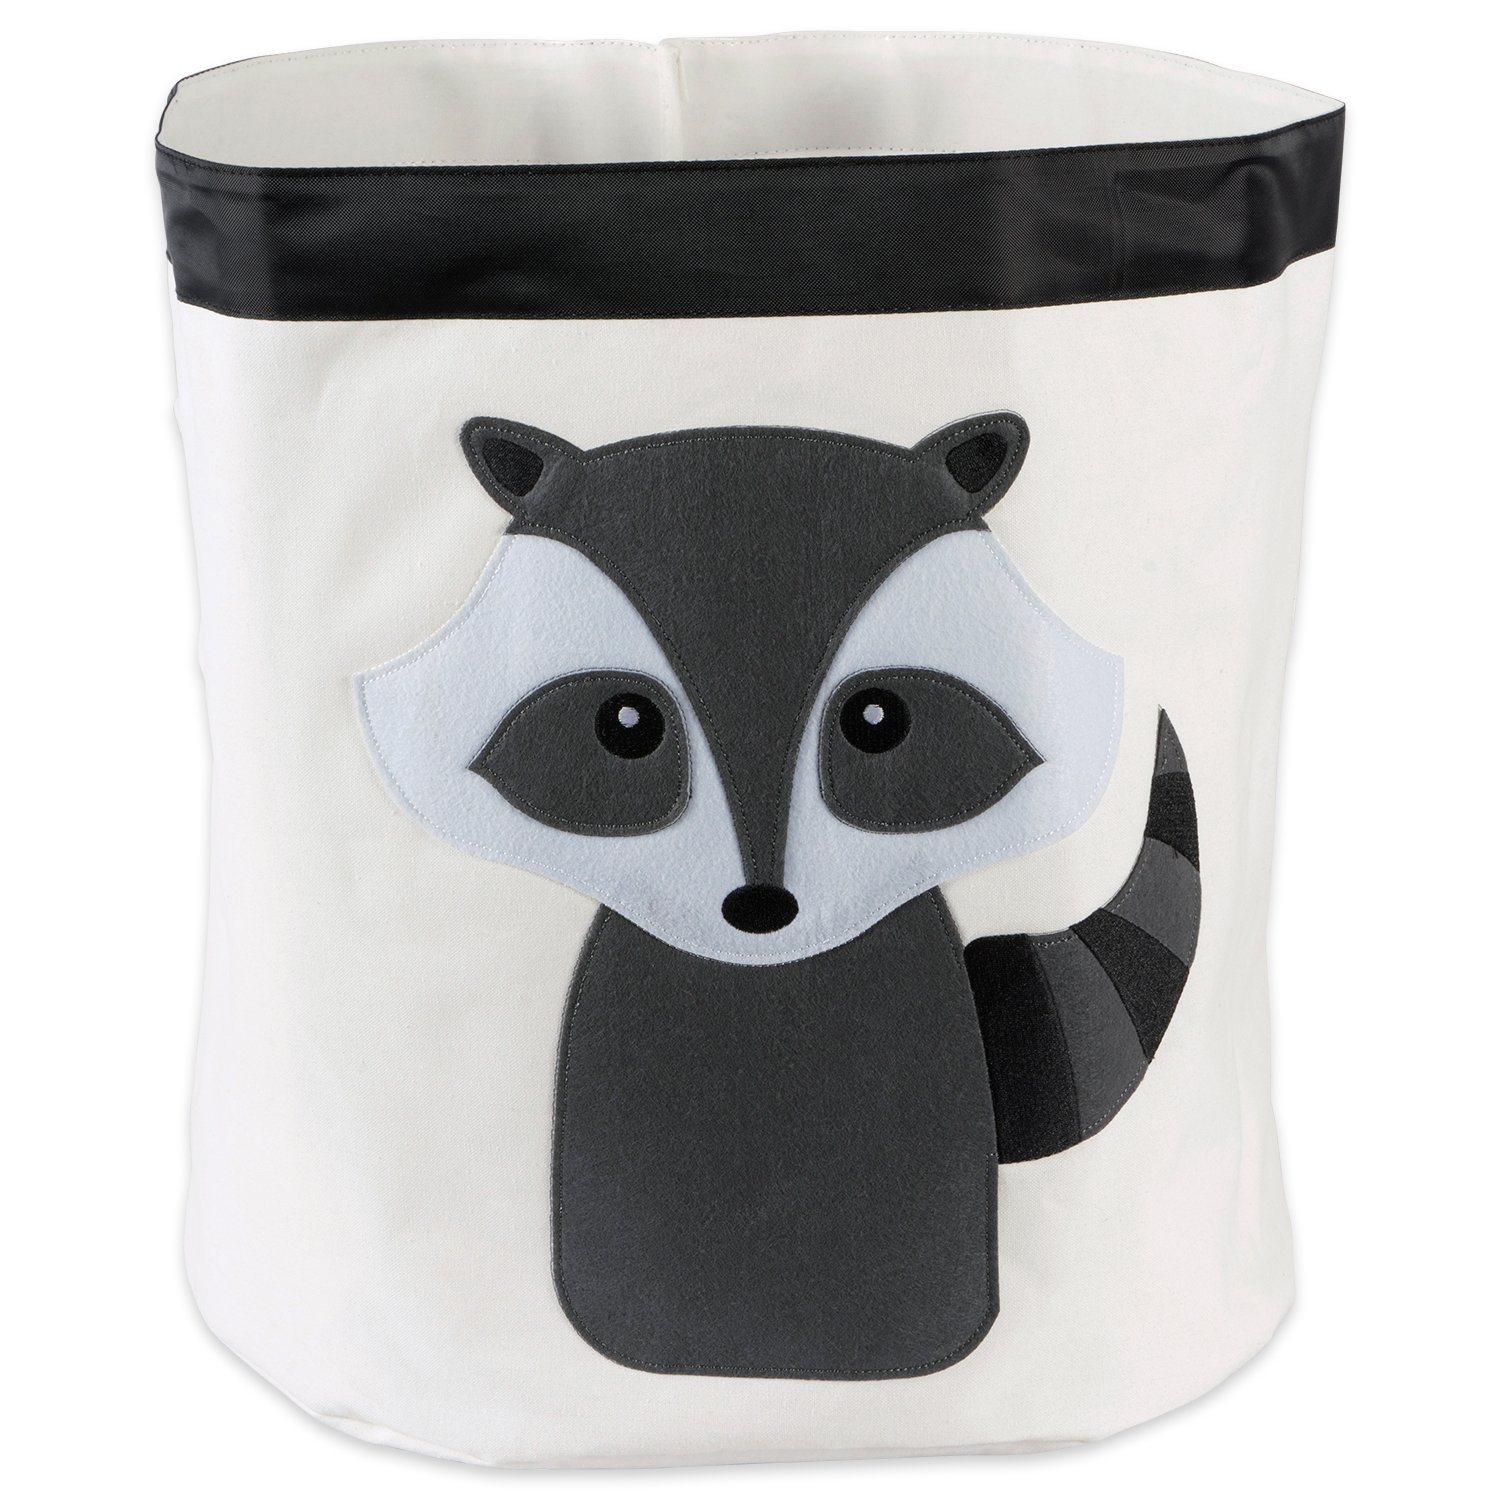 E-Living Store Collapsible Storage Bin Basket for Bedroom, Nursery, Playroom and More 17x18 Diameter - Raccoon